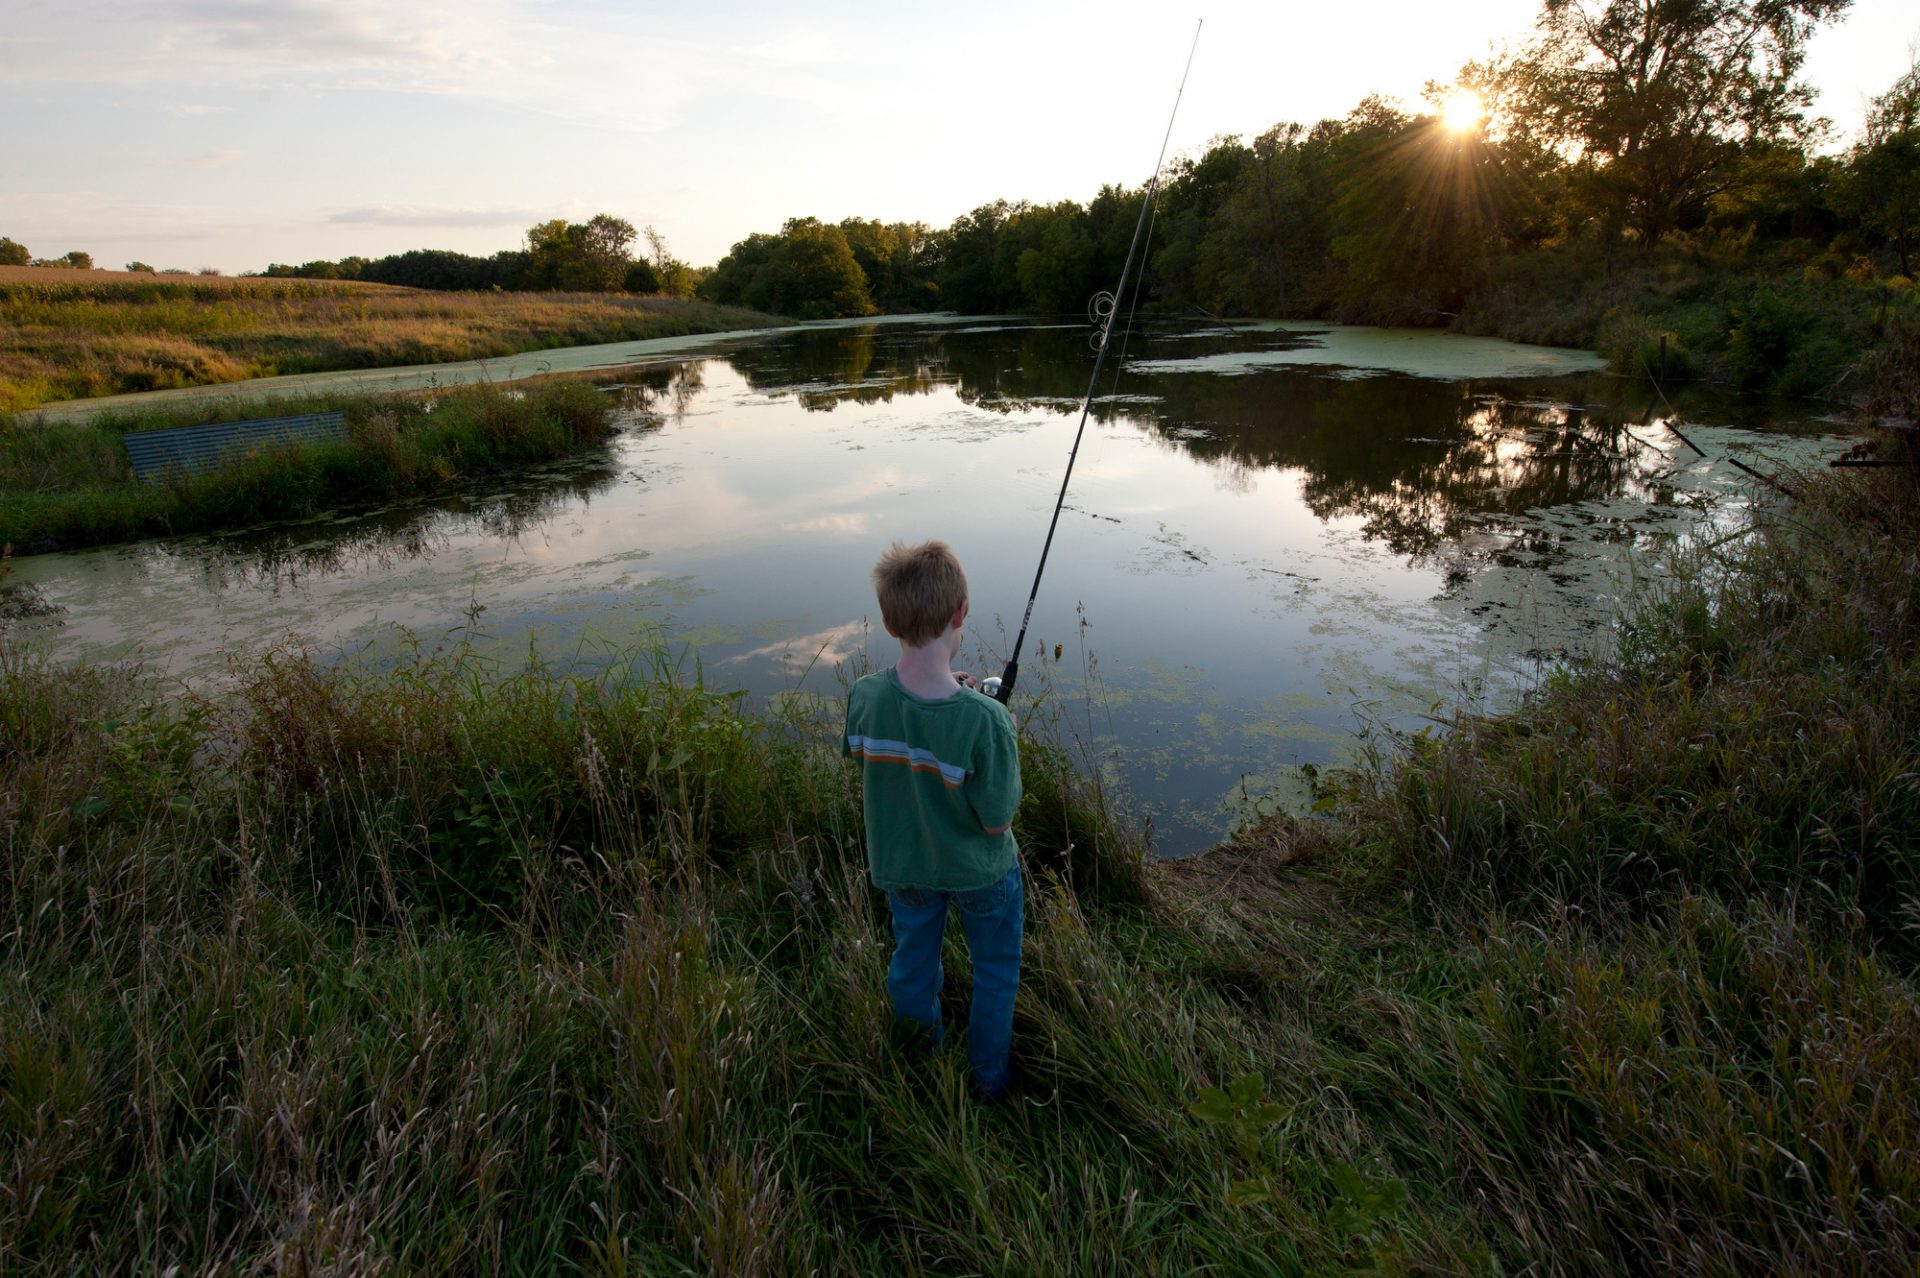 Photo: A young boy fishes in a pond near Ceresco, Nebraska.